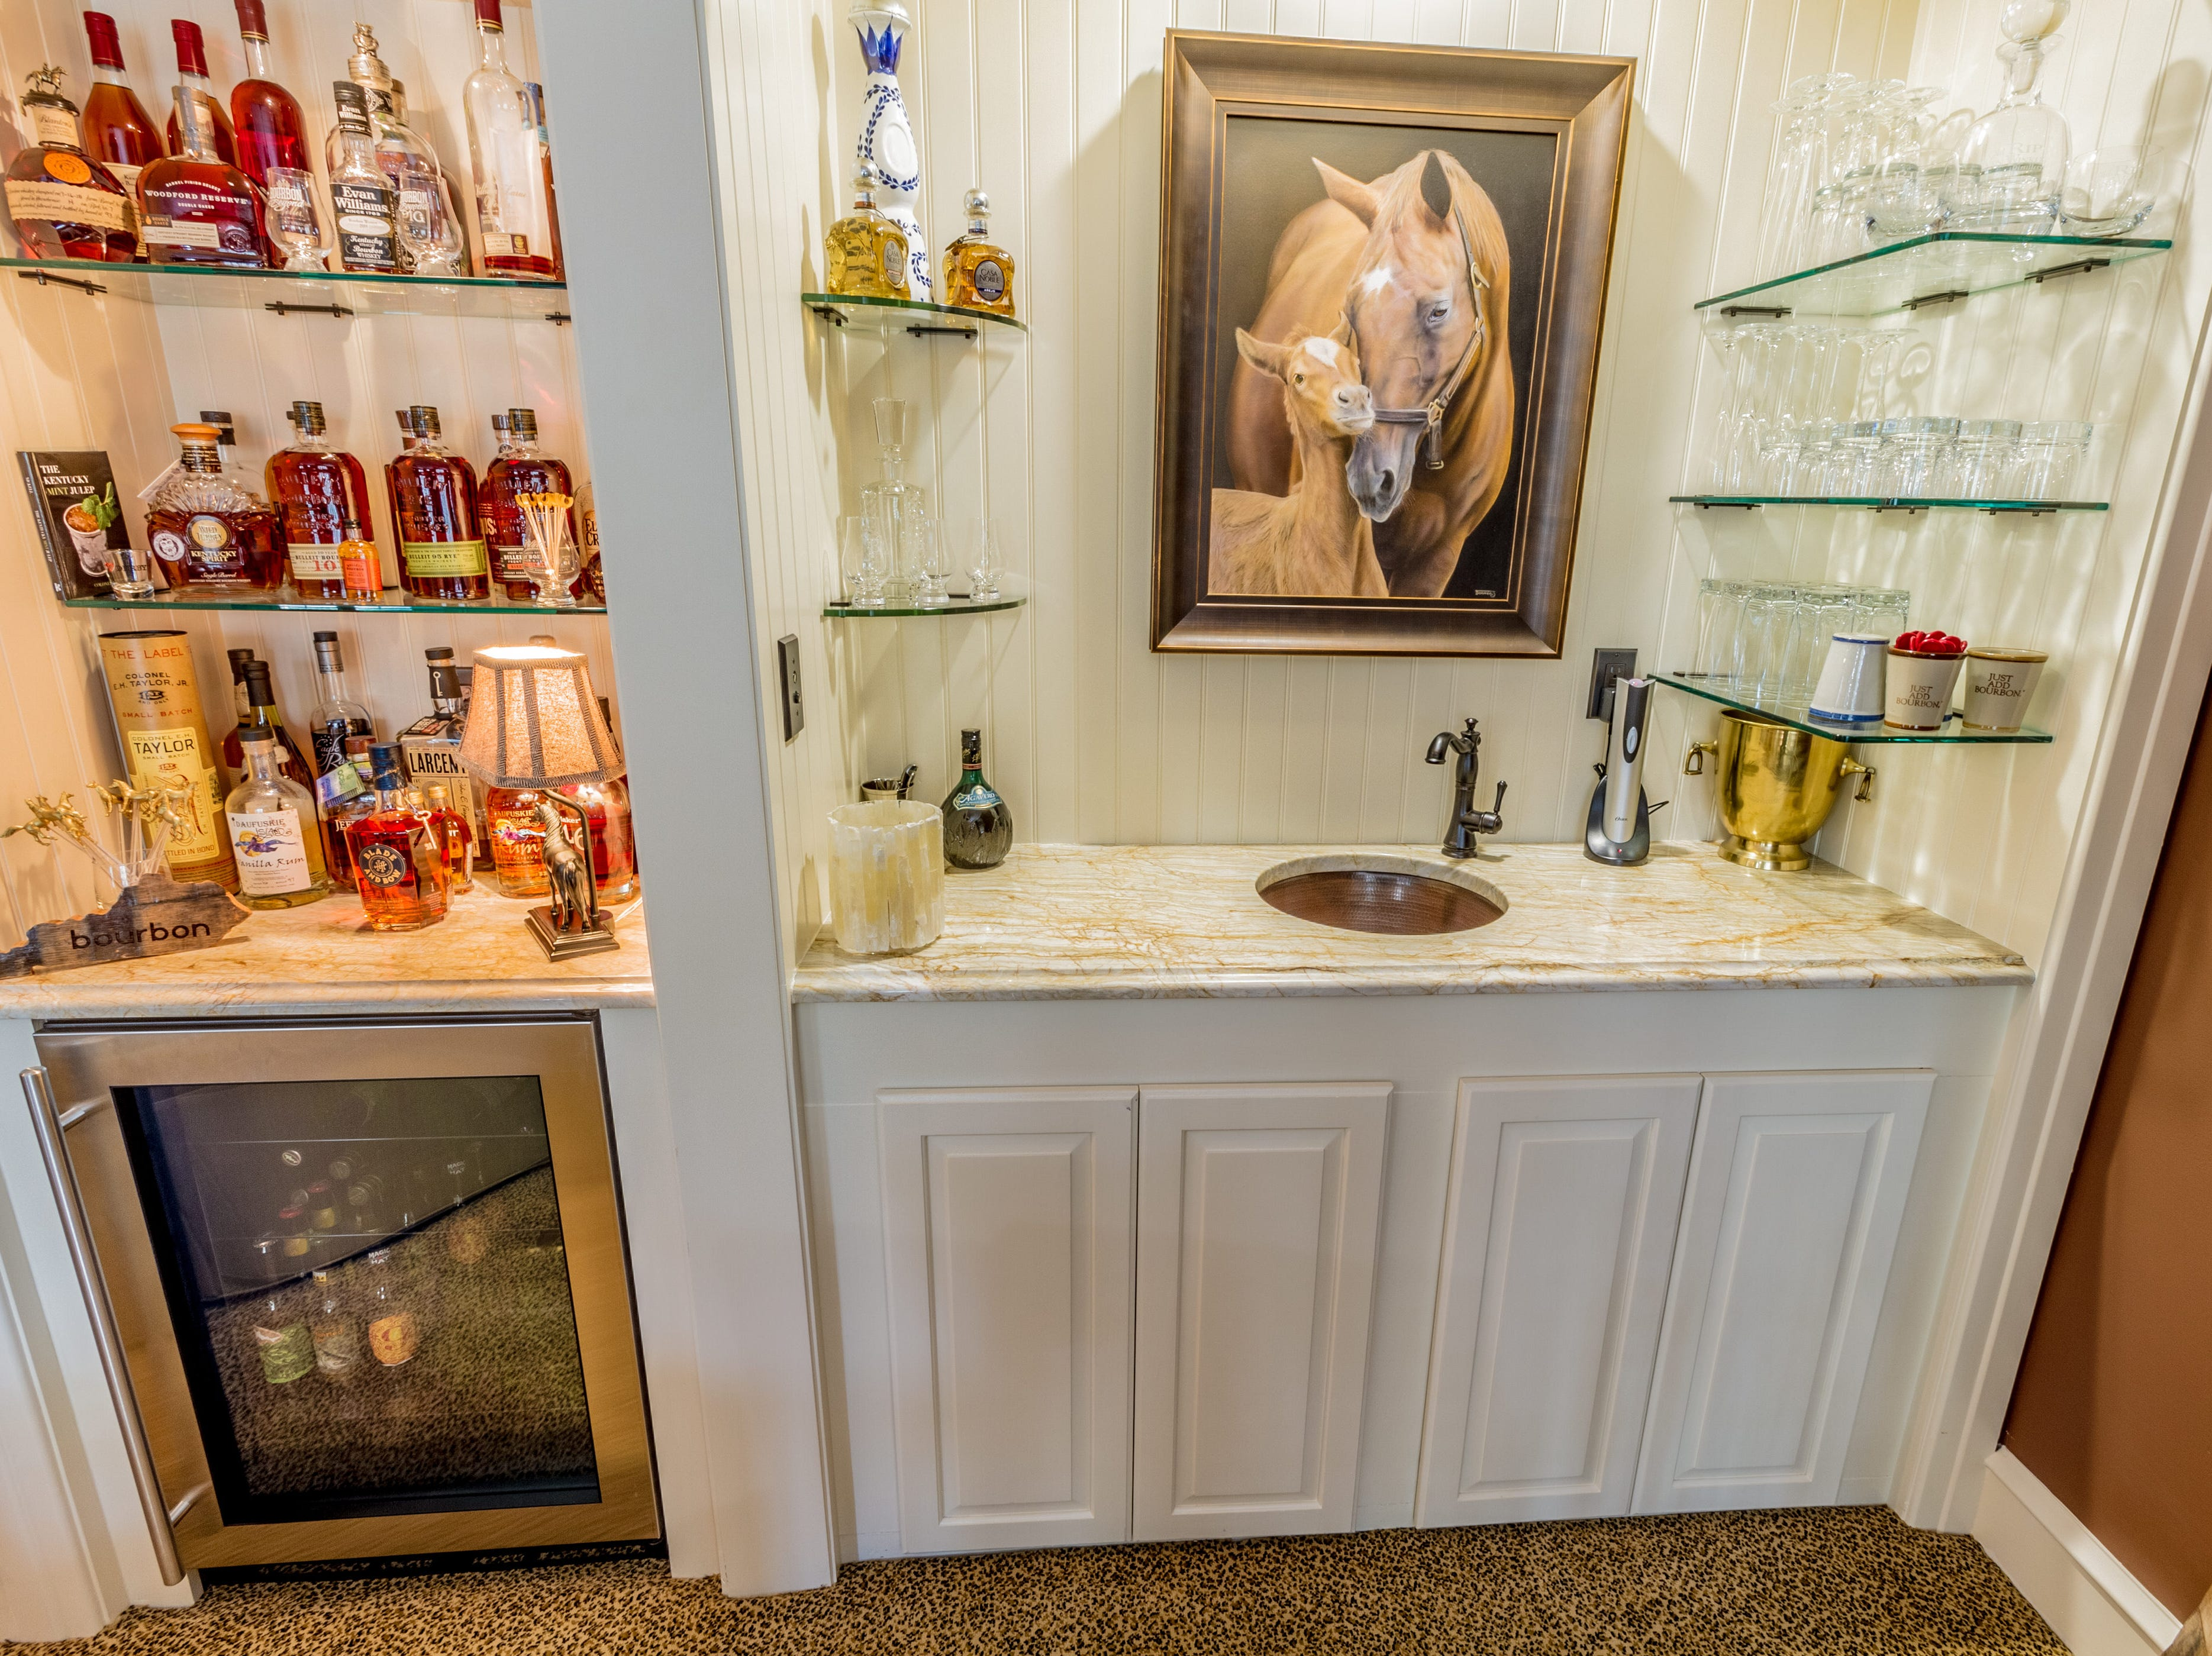 The second-floor family room at 1100 N. Rodney St. has a fireplace, bar and wine fridge and is decorated in a bourbon theme.